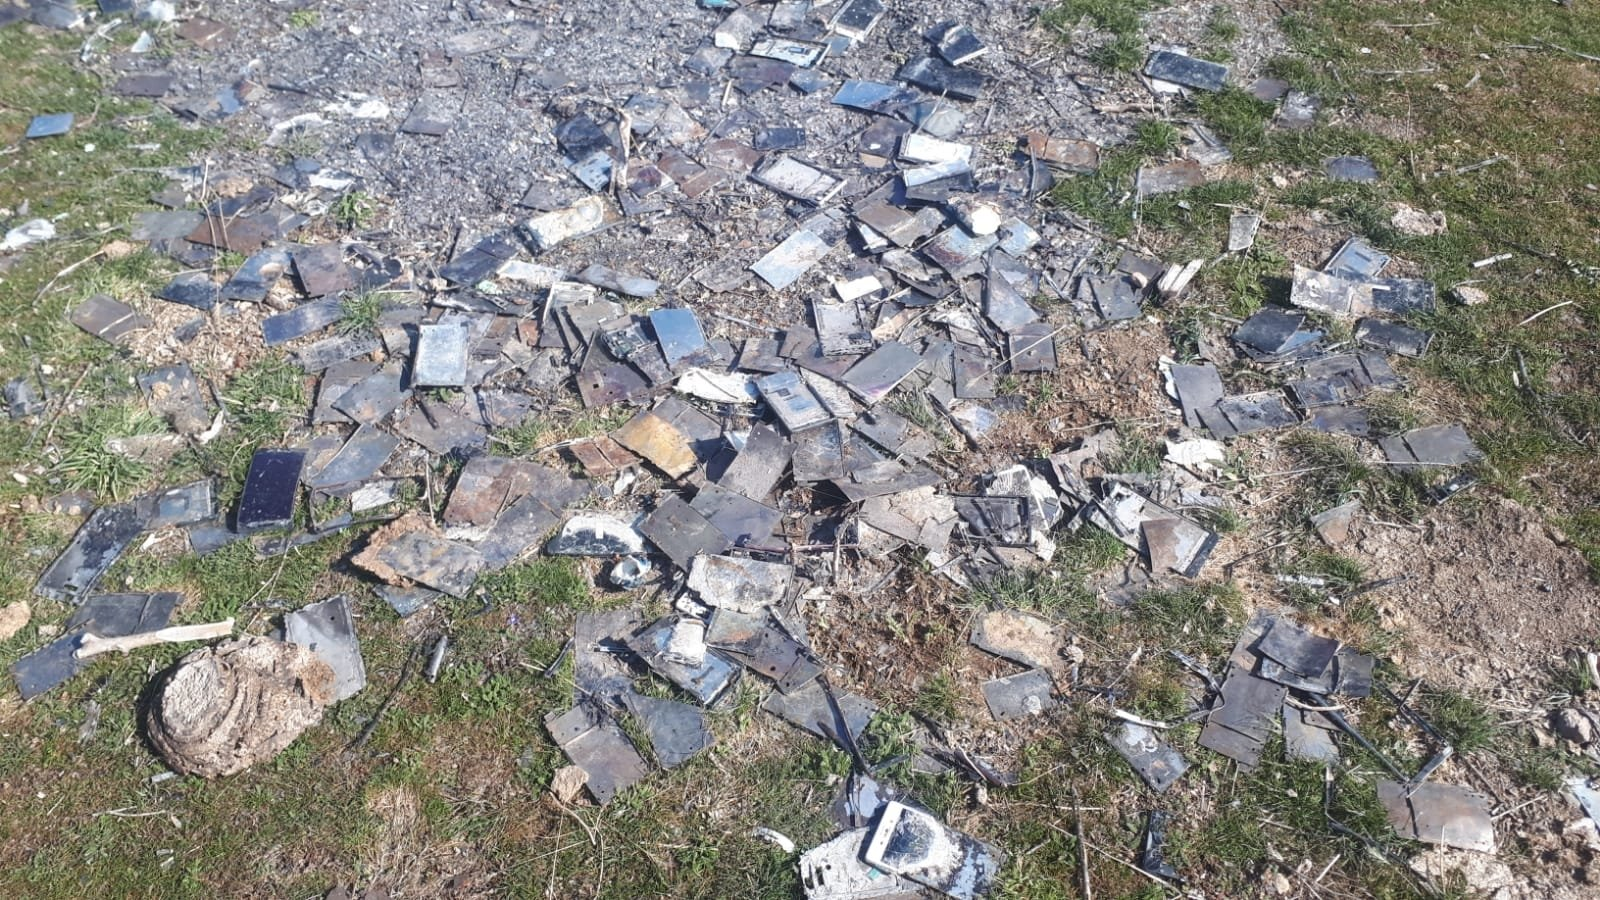 Burned cellphones found in a mountainous area in Kayseri, central Turkey, March 2, 2021. (DHA PHOTO)